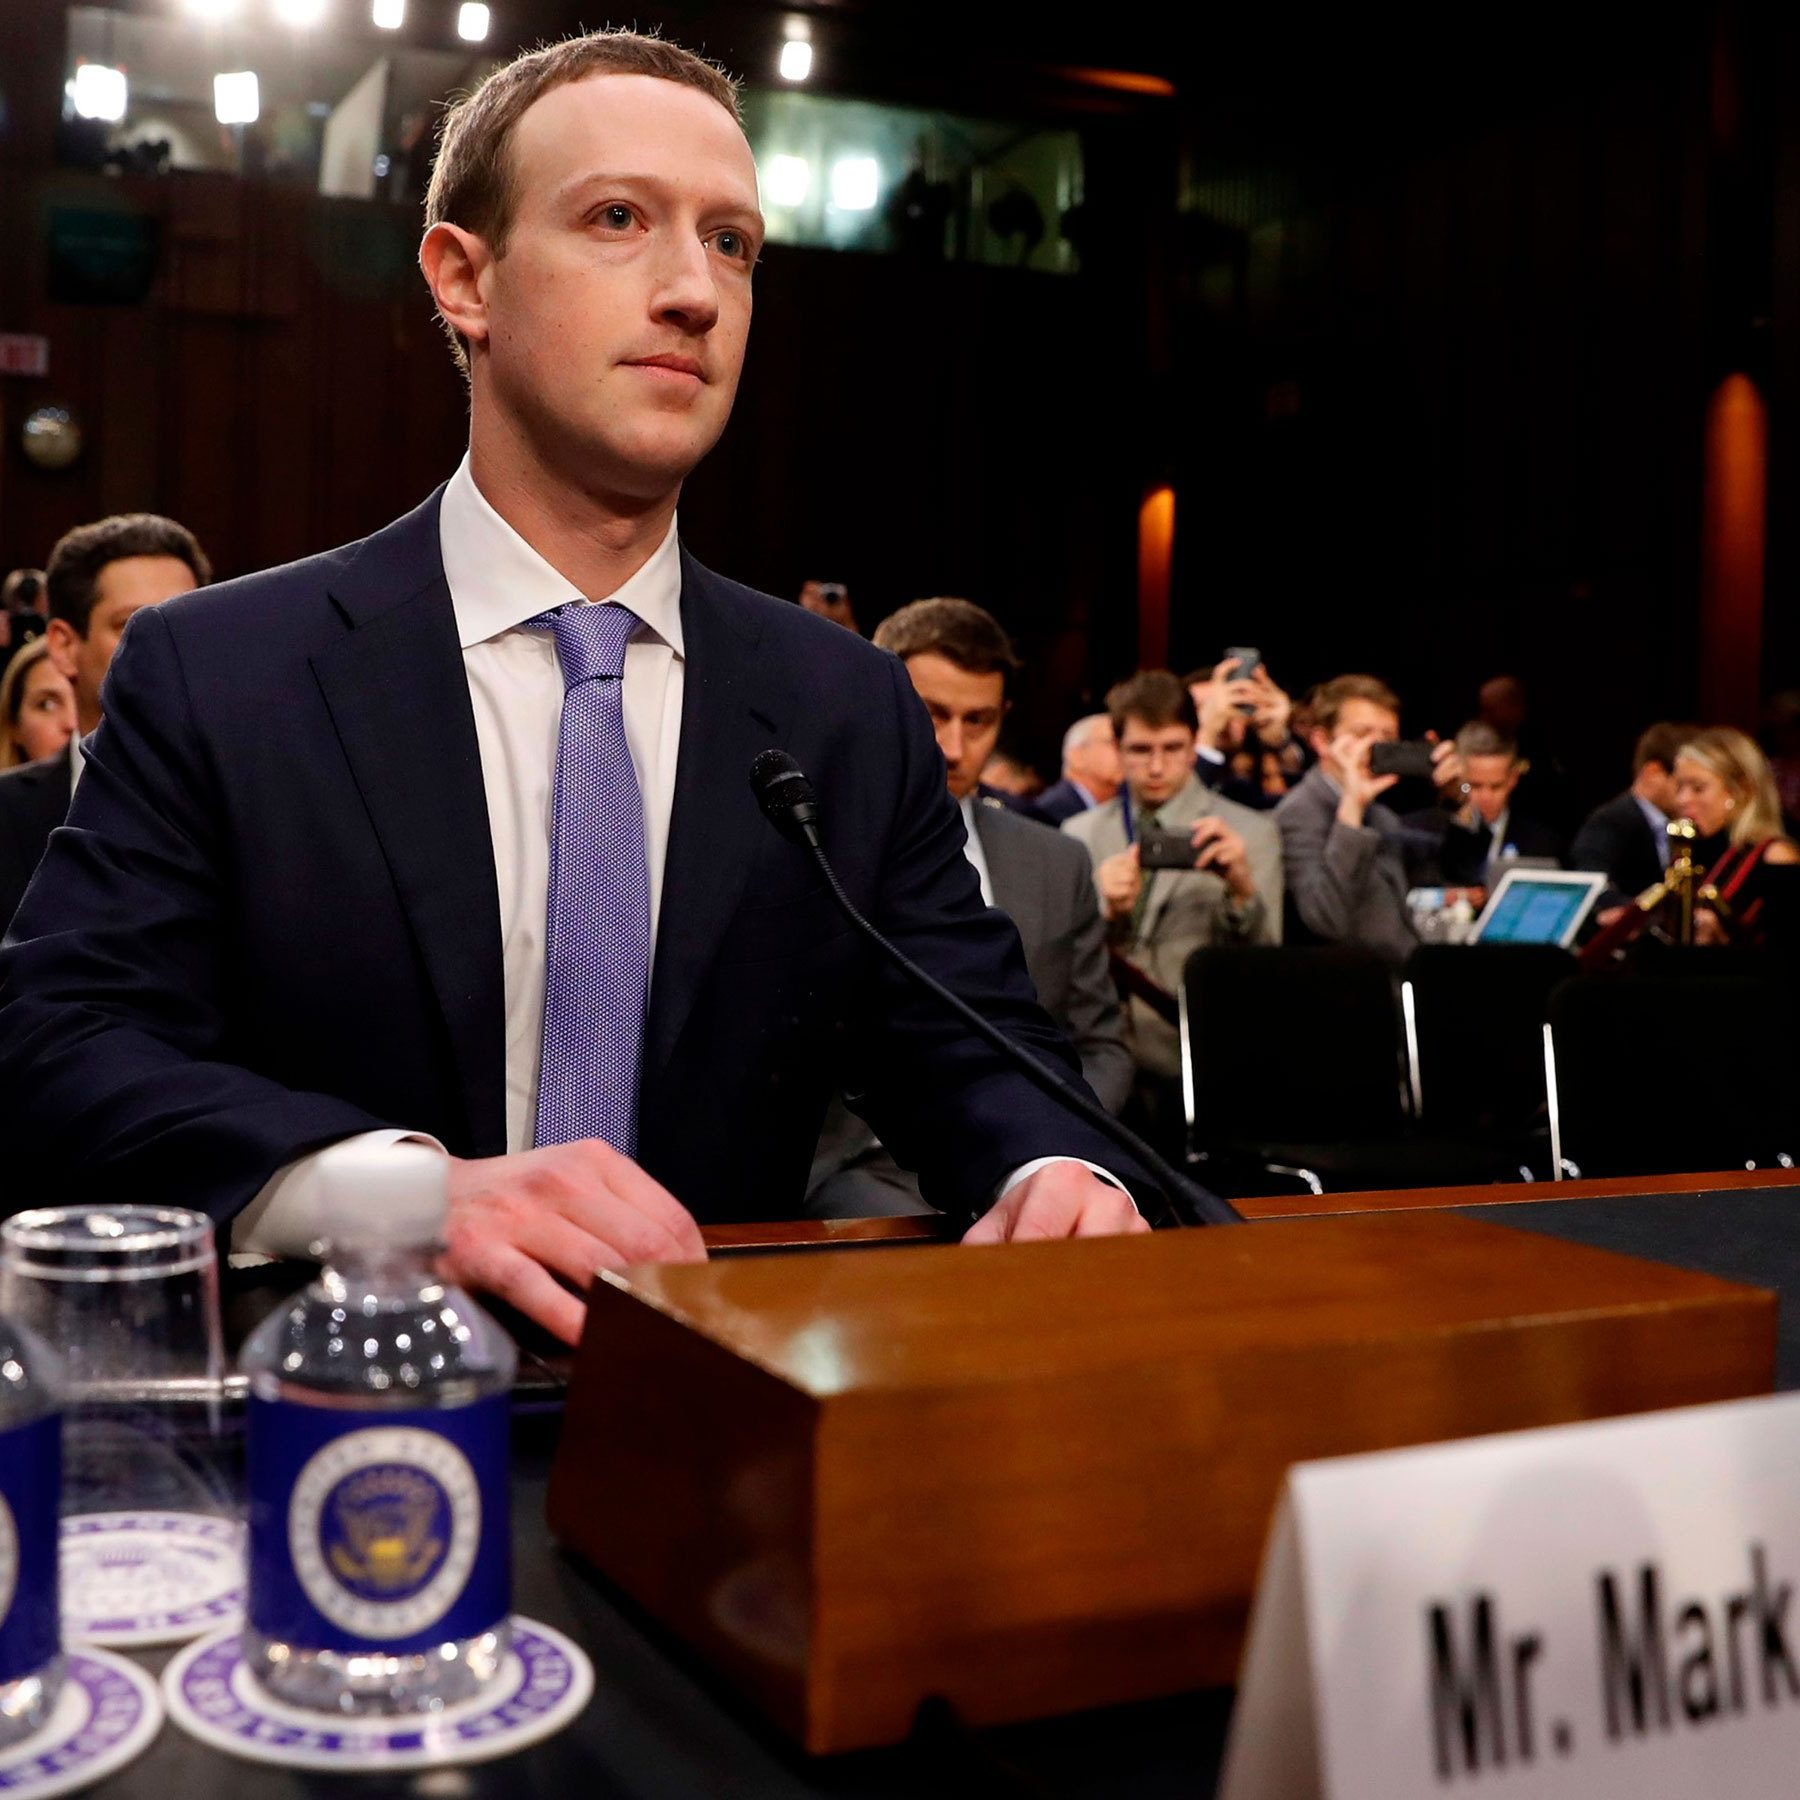 2018-04-10T184623Z_724810376_HP1EE4A1G5B54_RTRMADP_3_FACEBOOK-PRIVACY-ZUCKERBERG